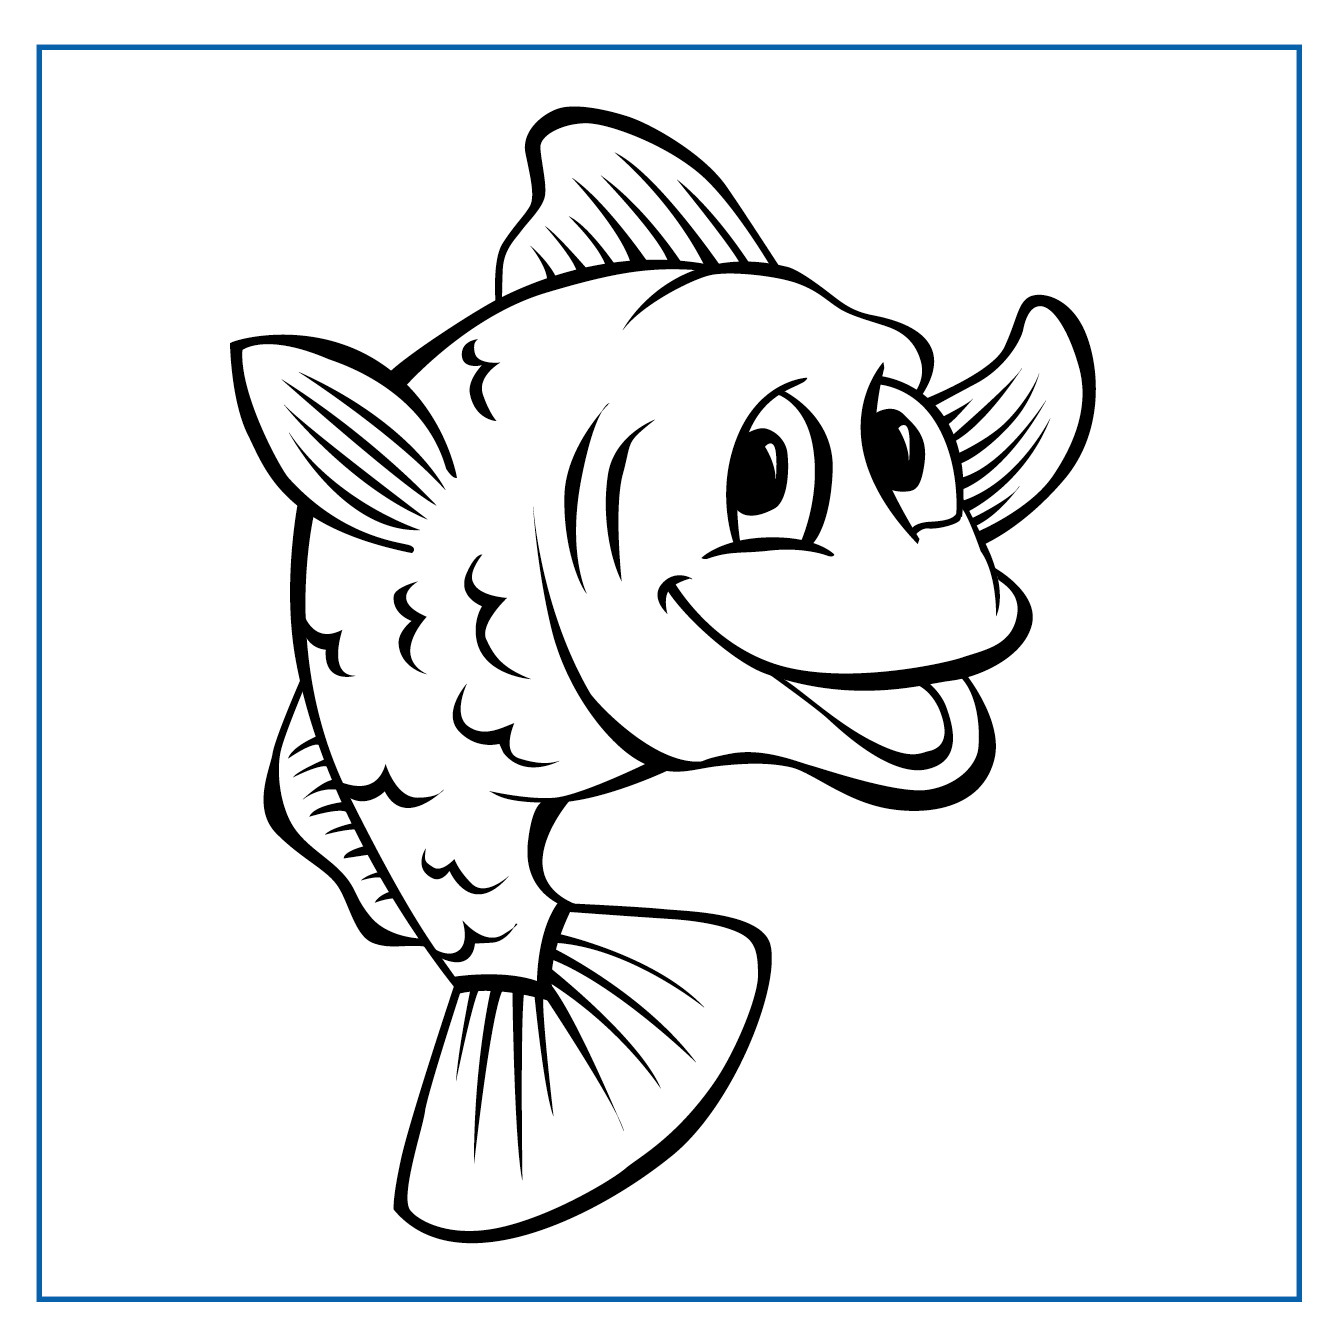 Charlie Cod - Click on my picture to print me out and colour me in